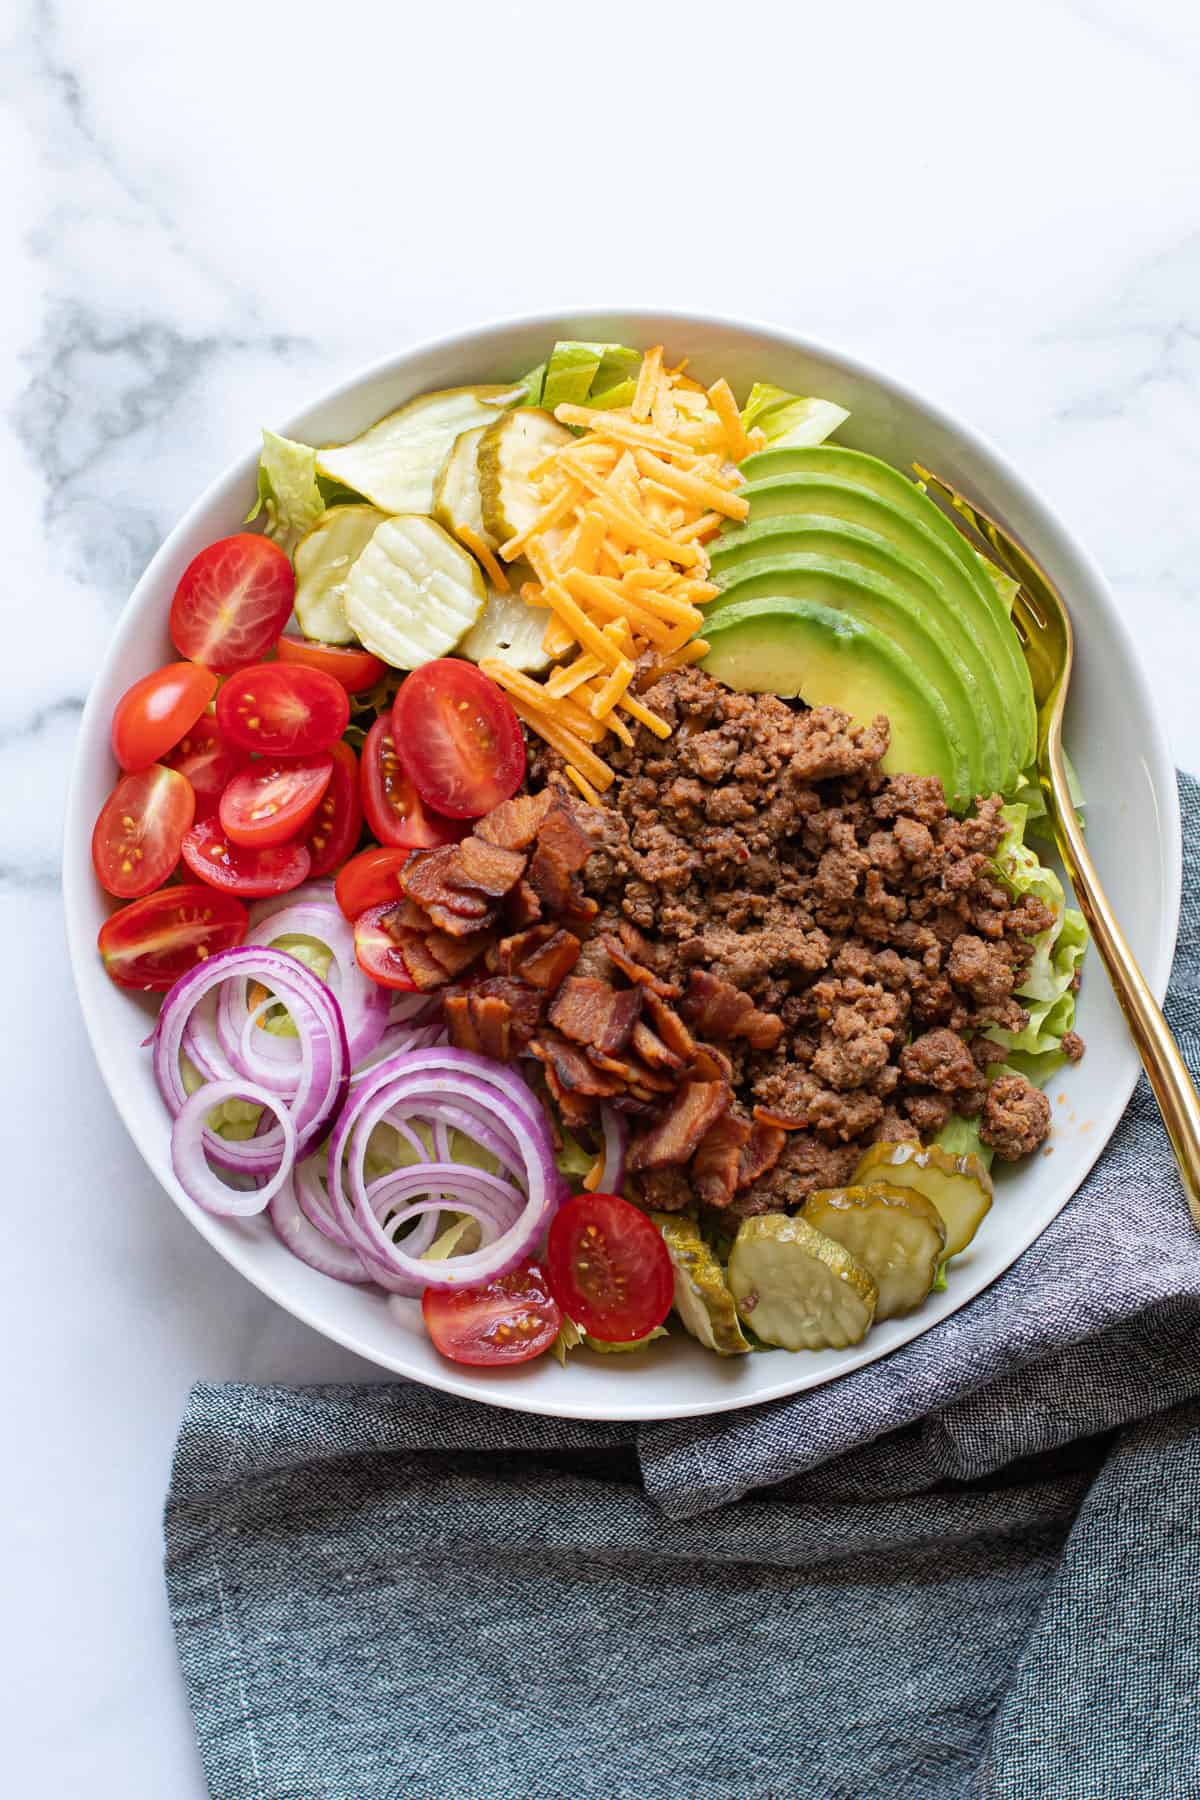 Cheeseburger salad ingredients in a bowl.